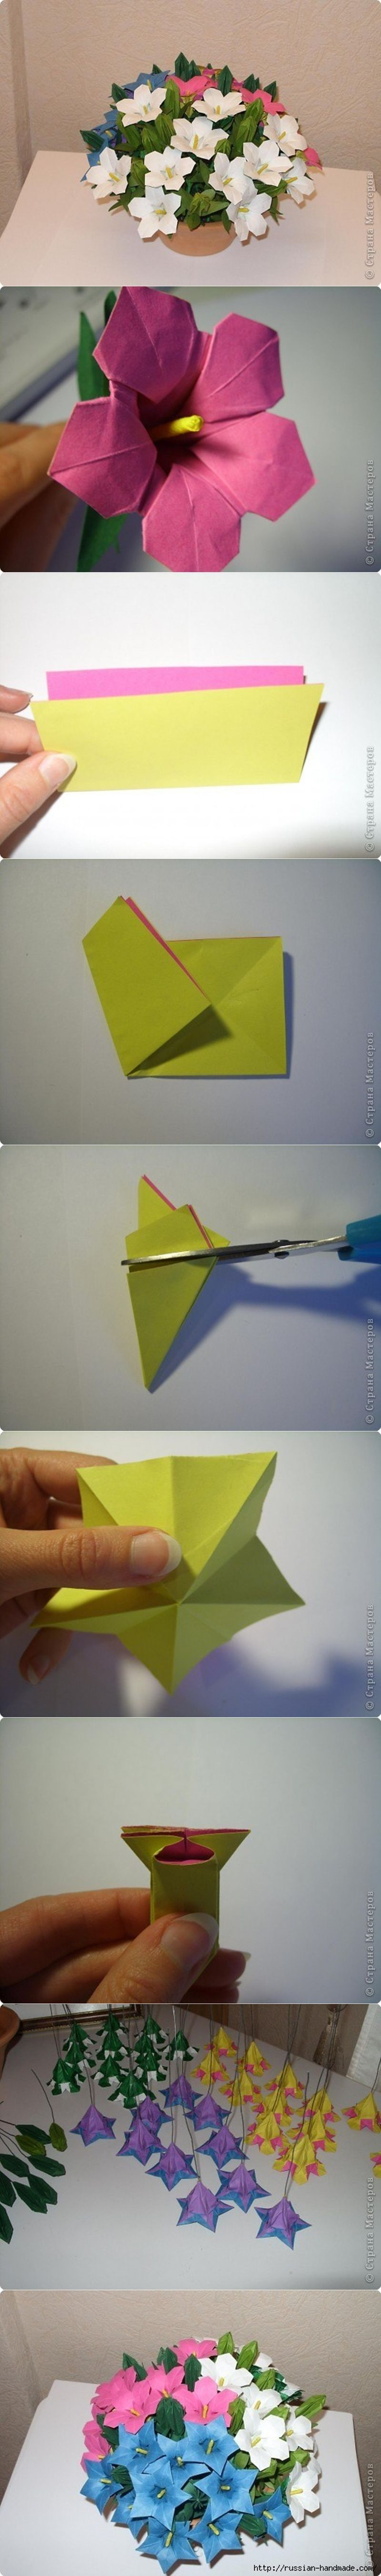 How to make paper flowers using origami the art of paper folding fun how to make paper flowers using origami the art of paper folding fun paper diy on izmirmasajfo